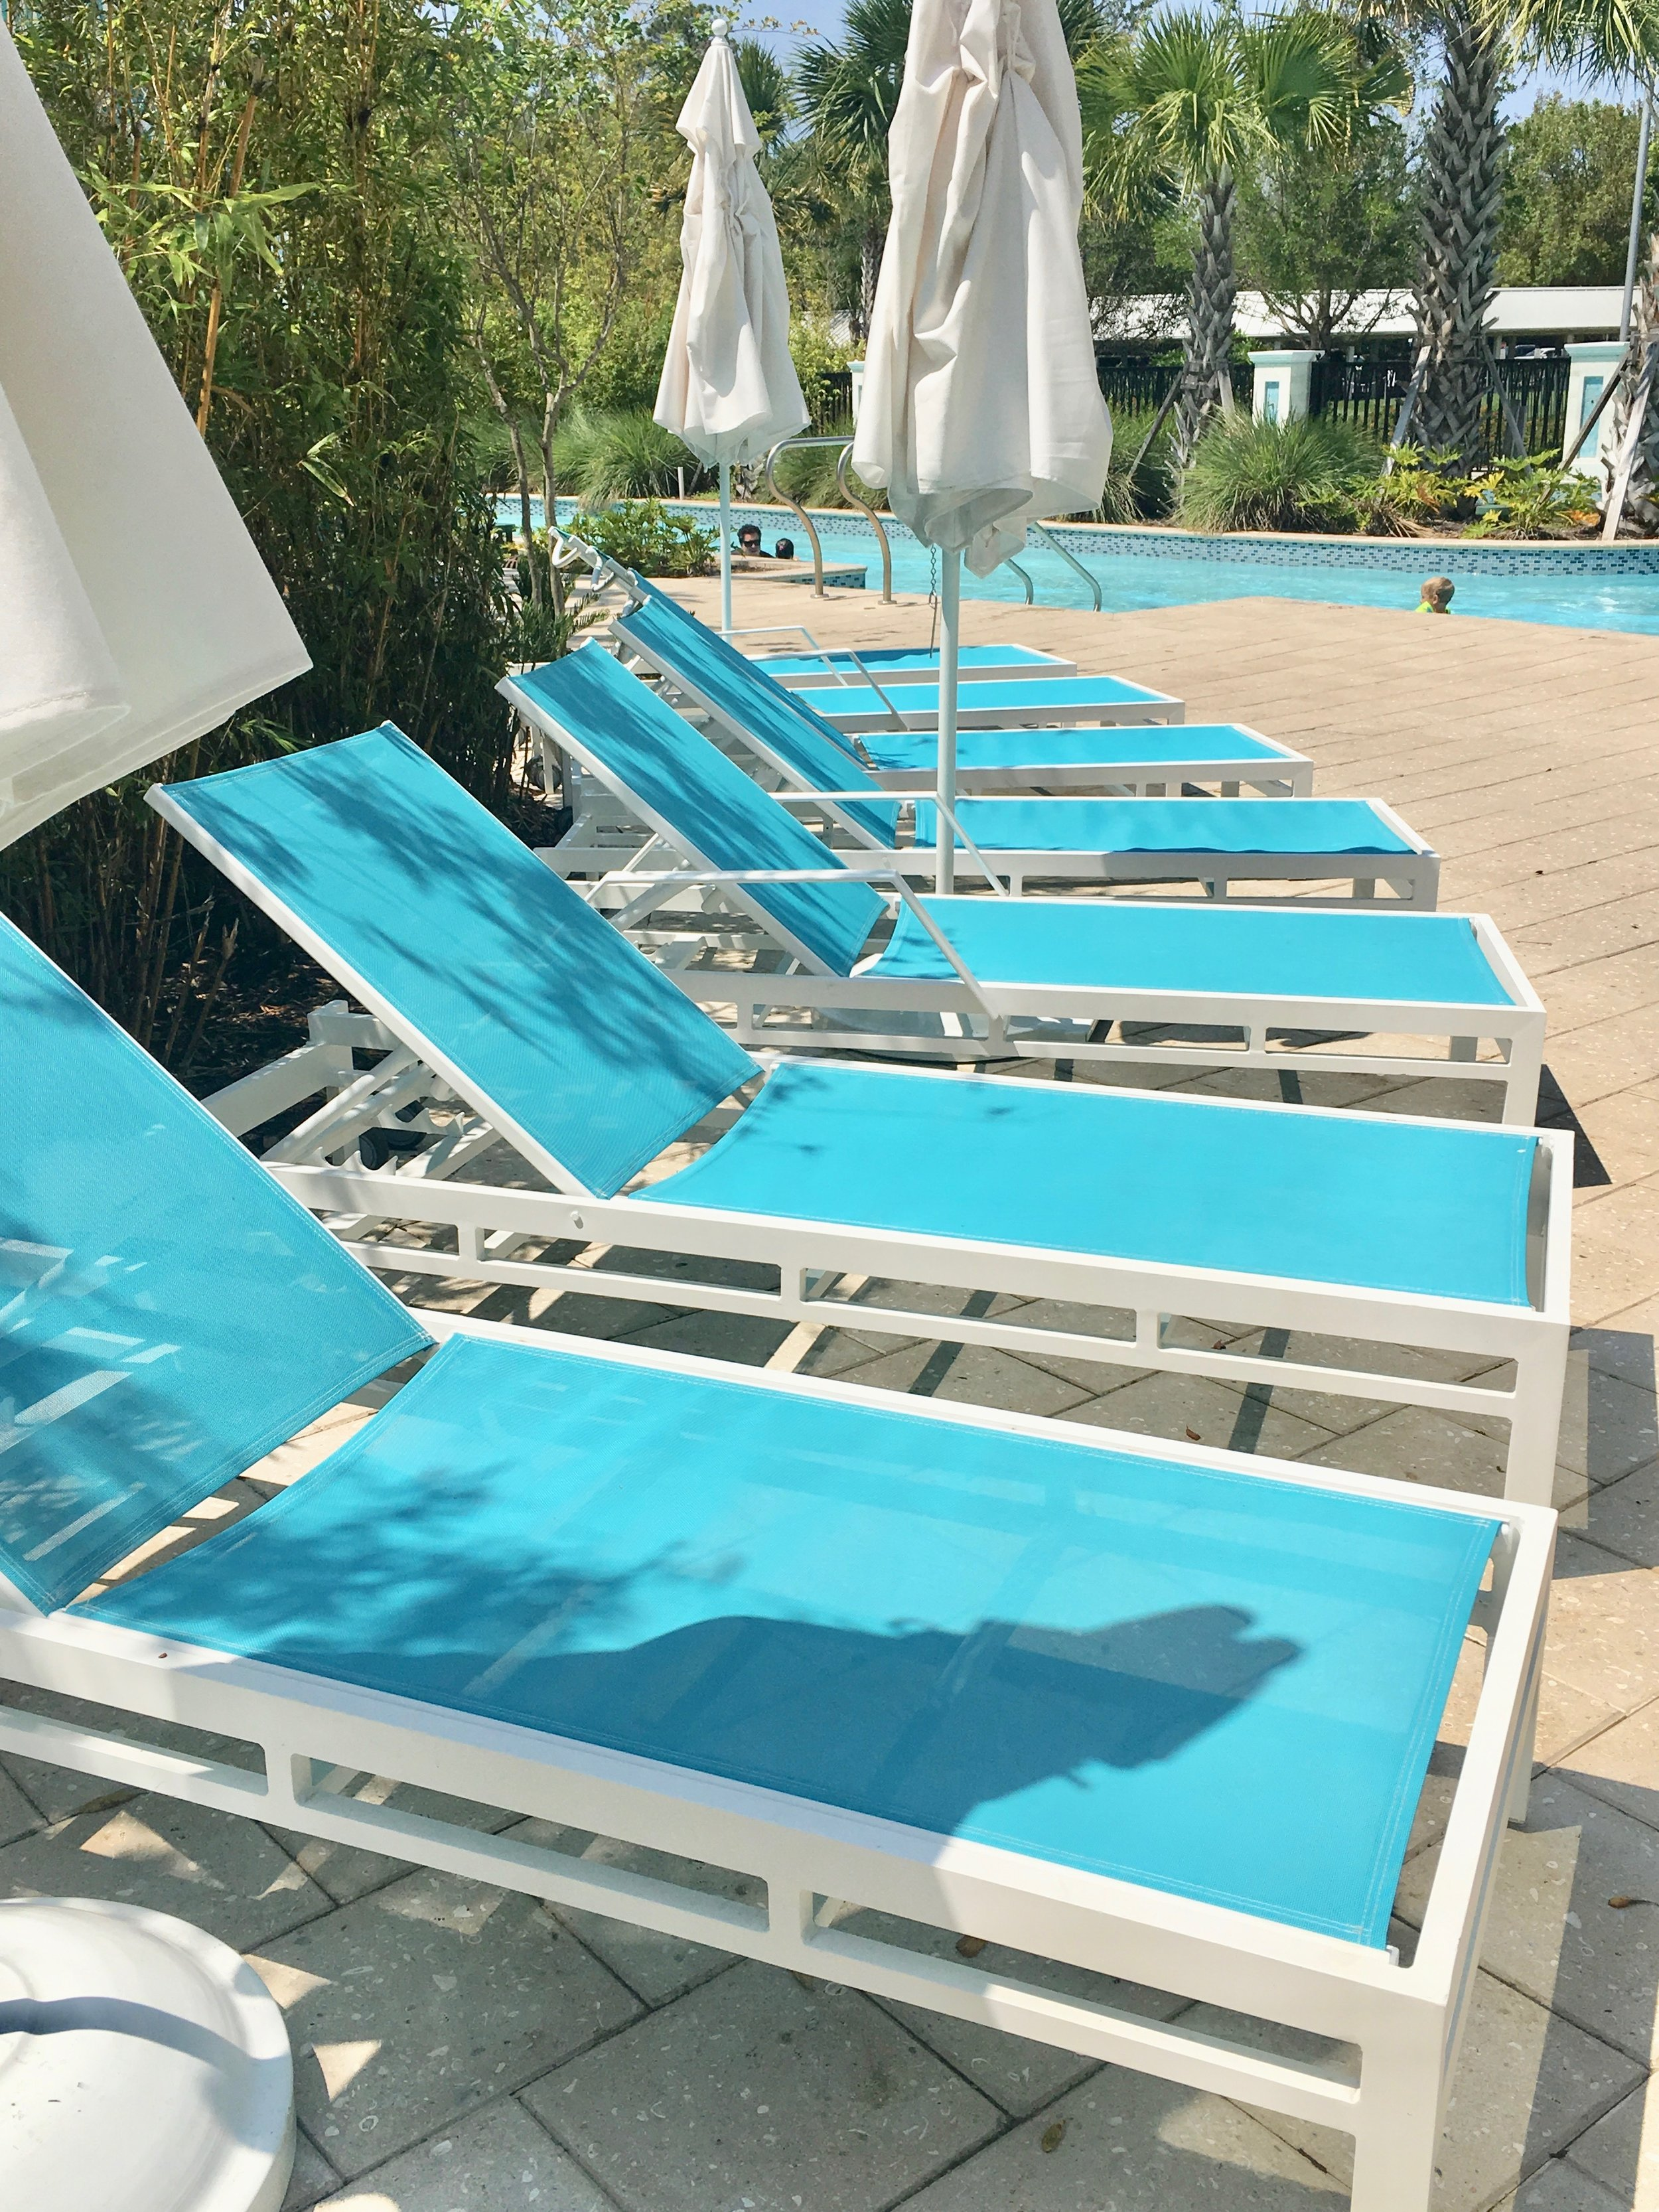 Tour the Hilton Orlando Buena Vista Palace loungers